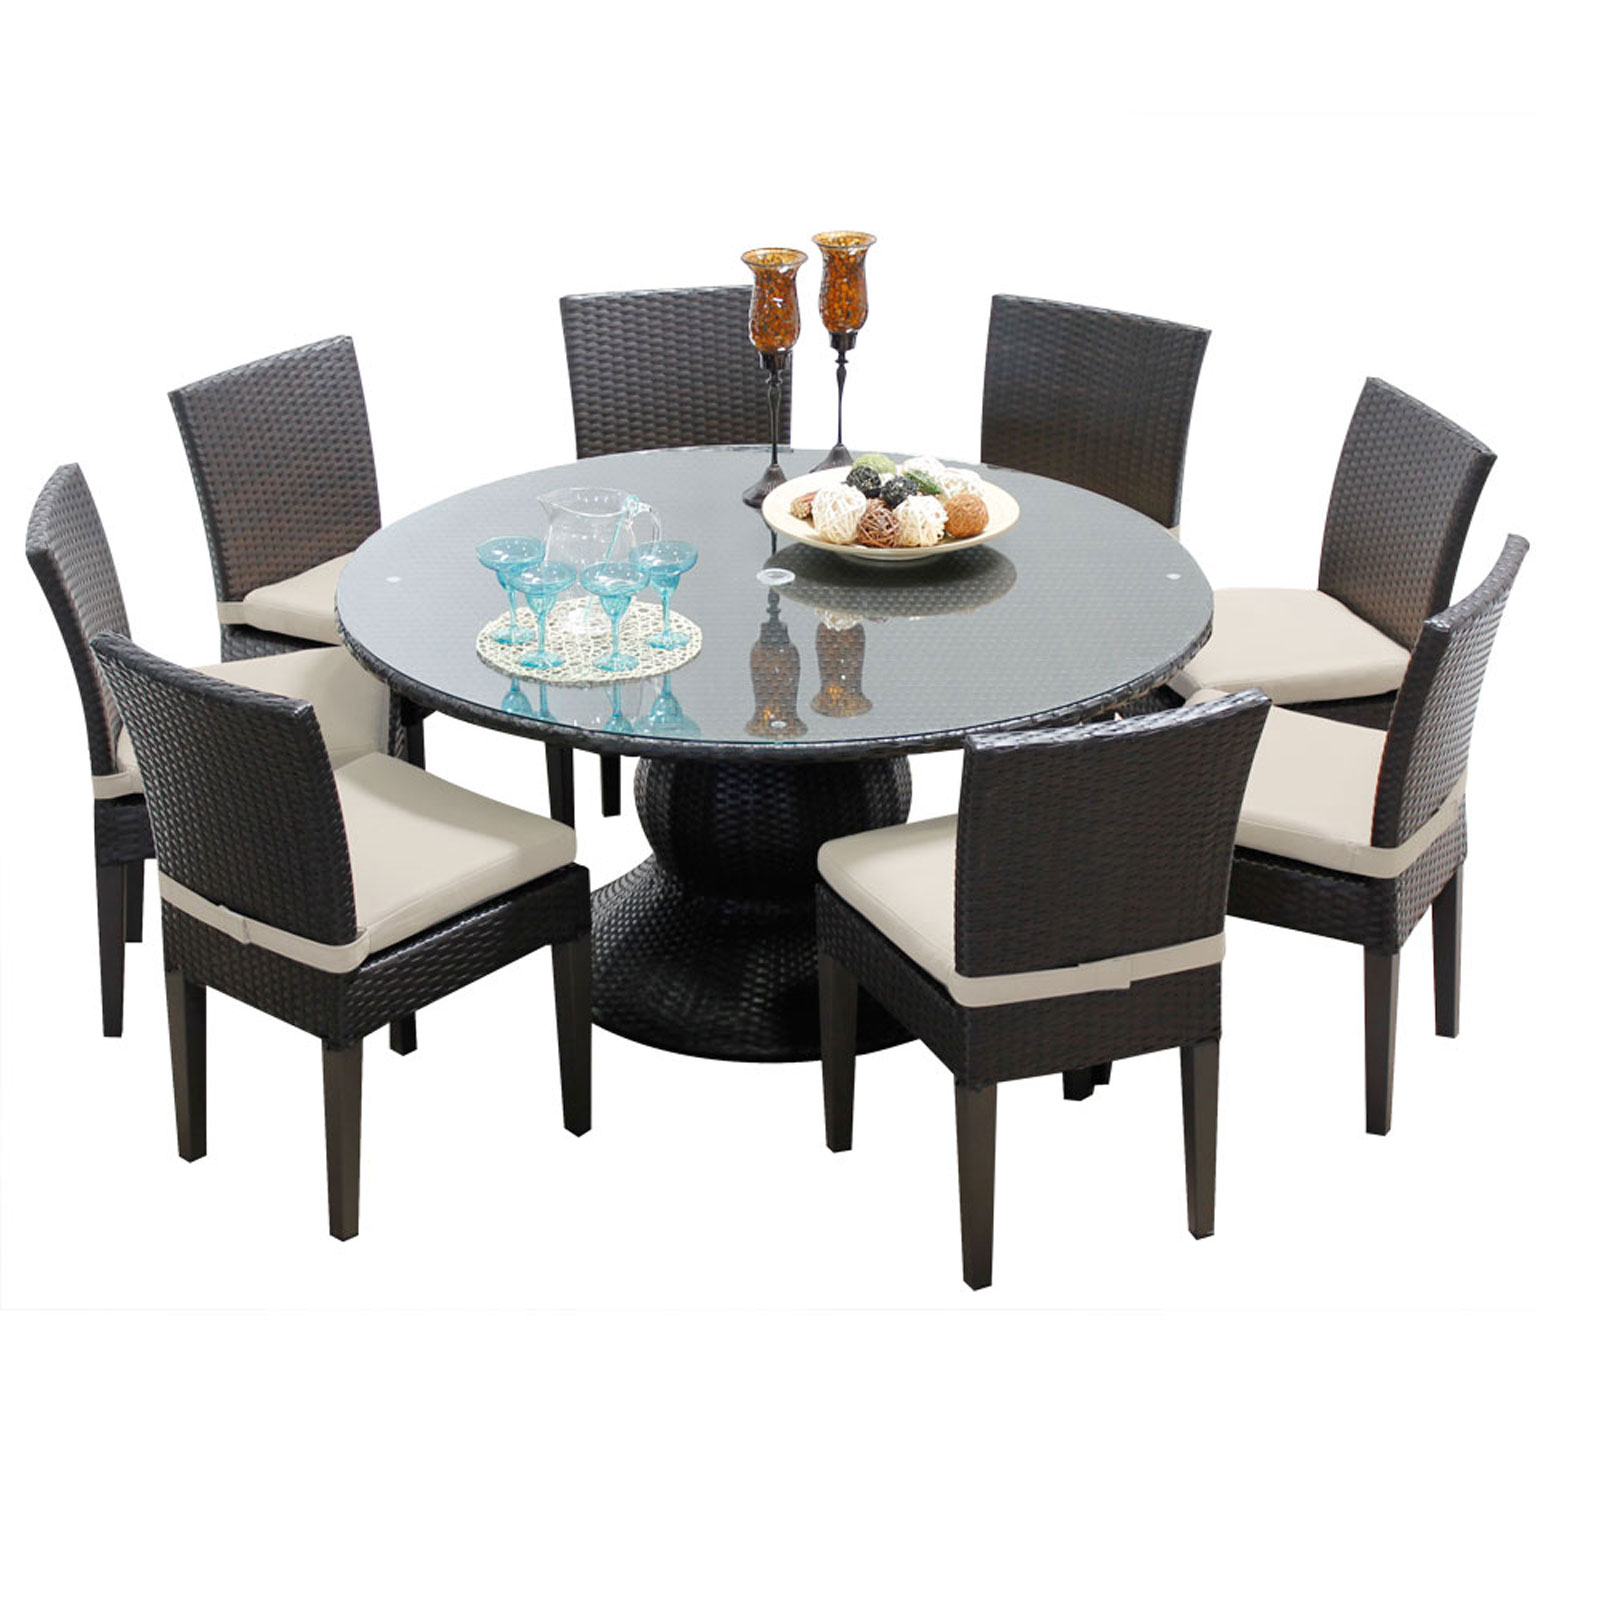 Your home improvements refference large outdoor dining tables - Patio Dining Sets 10 10 7 8